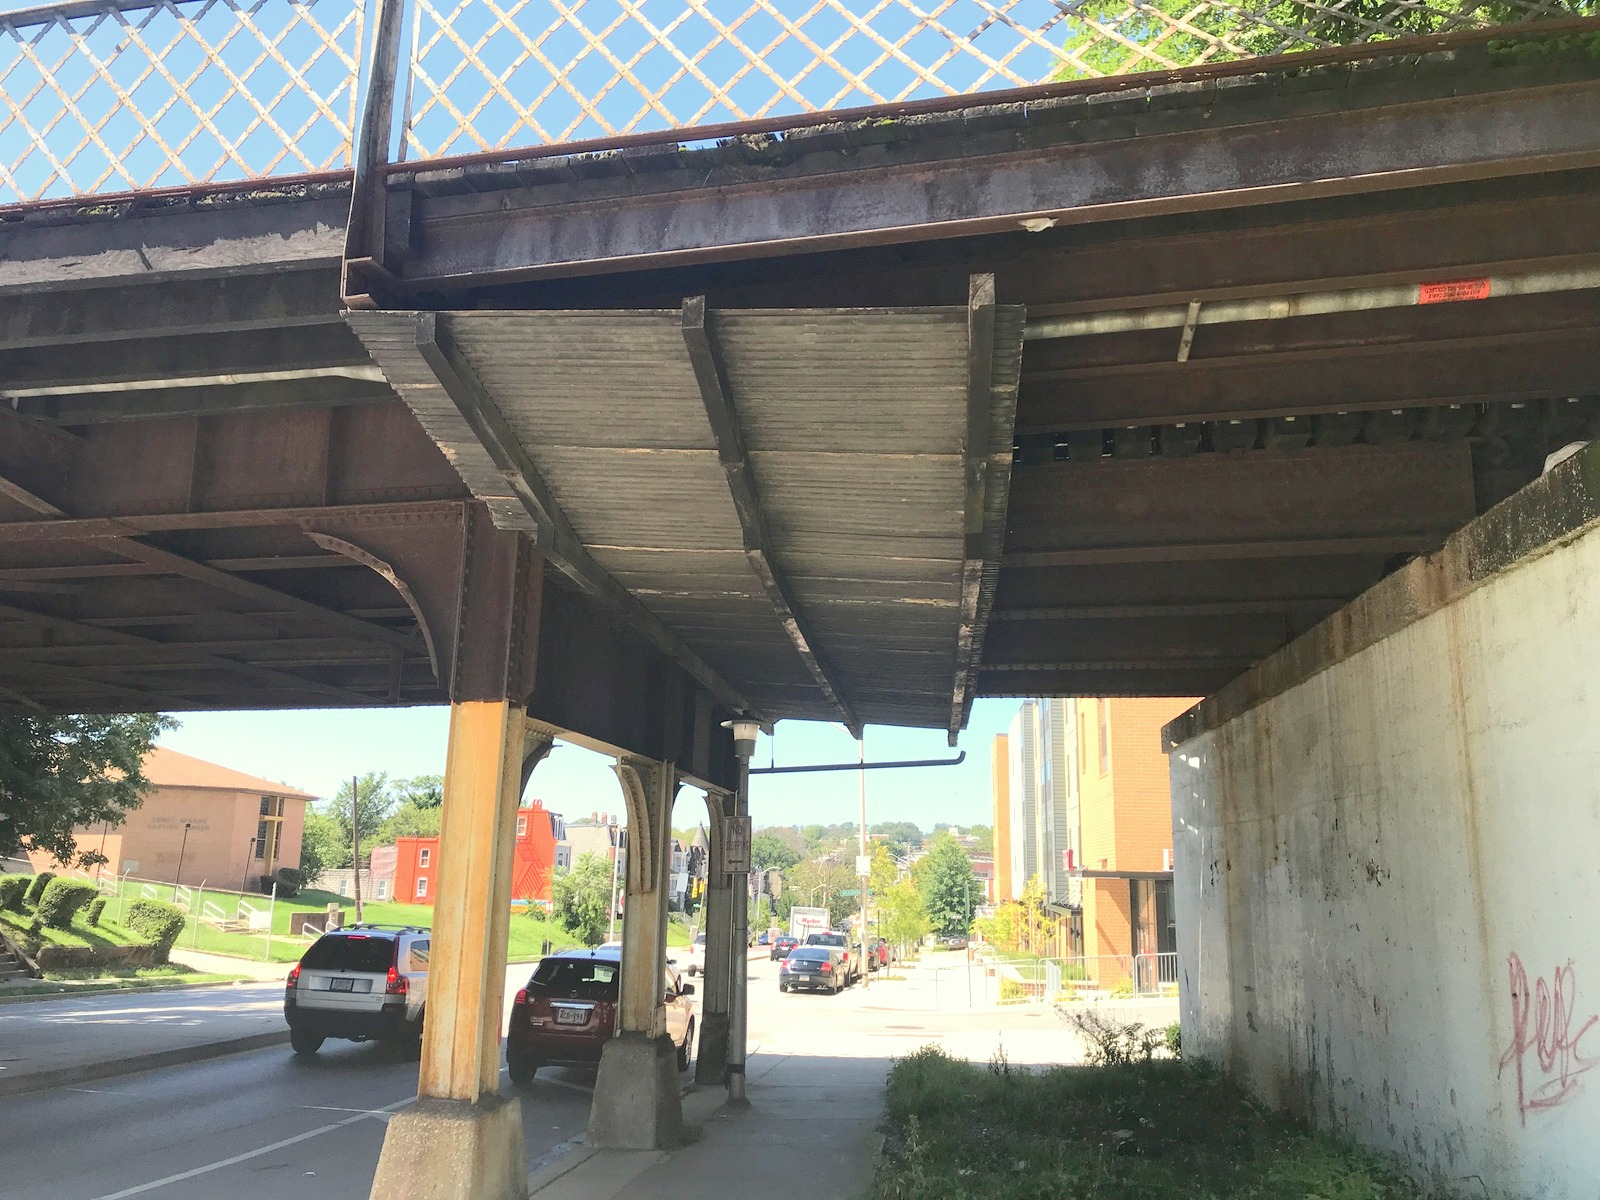 The north side of the bridge has a corrugated metal roof to protect pedestrians from falling debris. The south side of the bridge(BELOW) has open gaps throughout its length. (Mark Reutter)